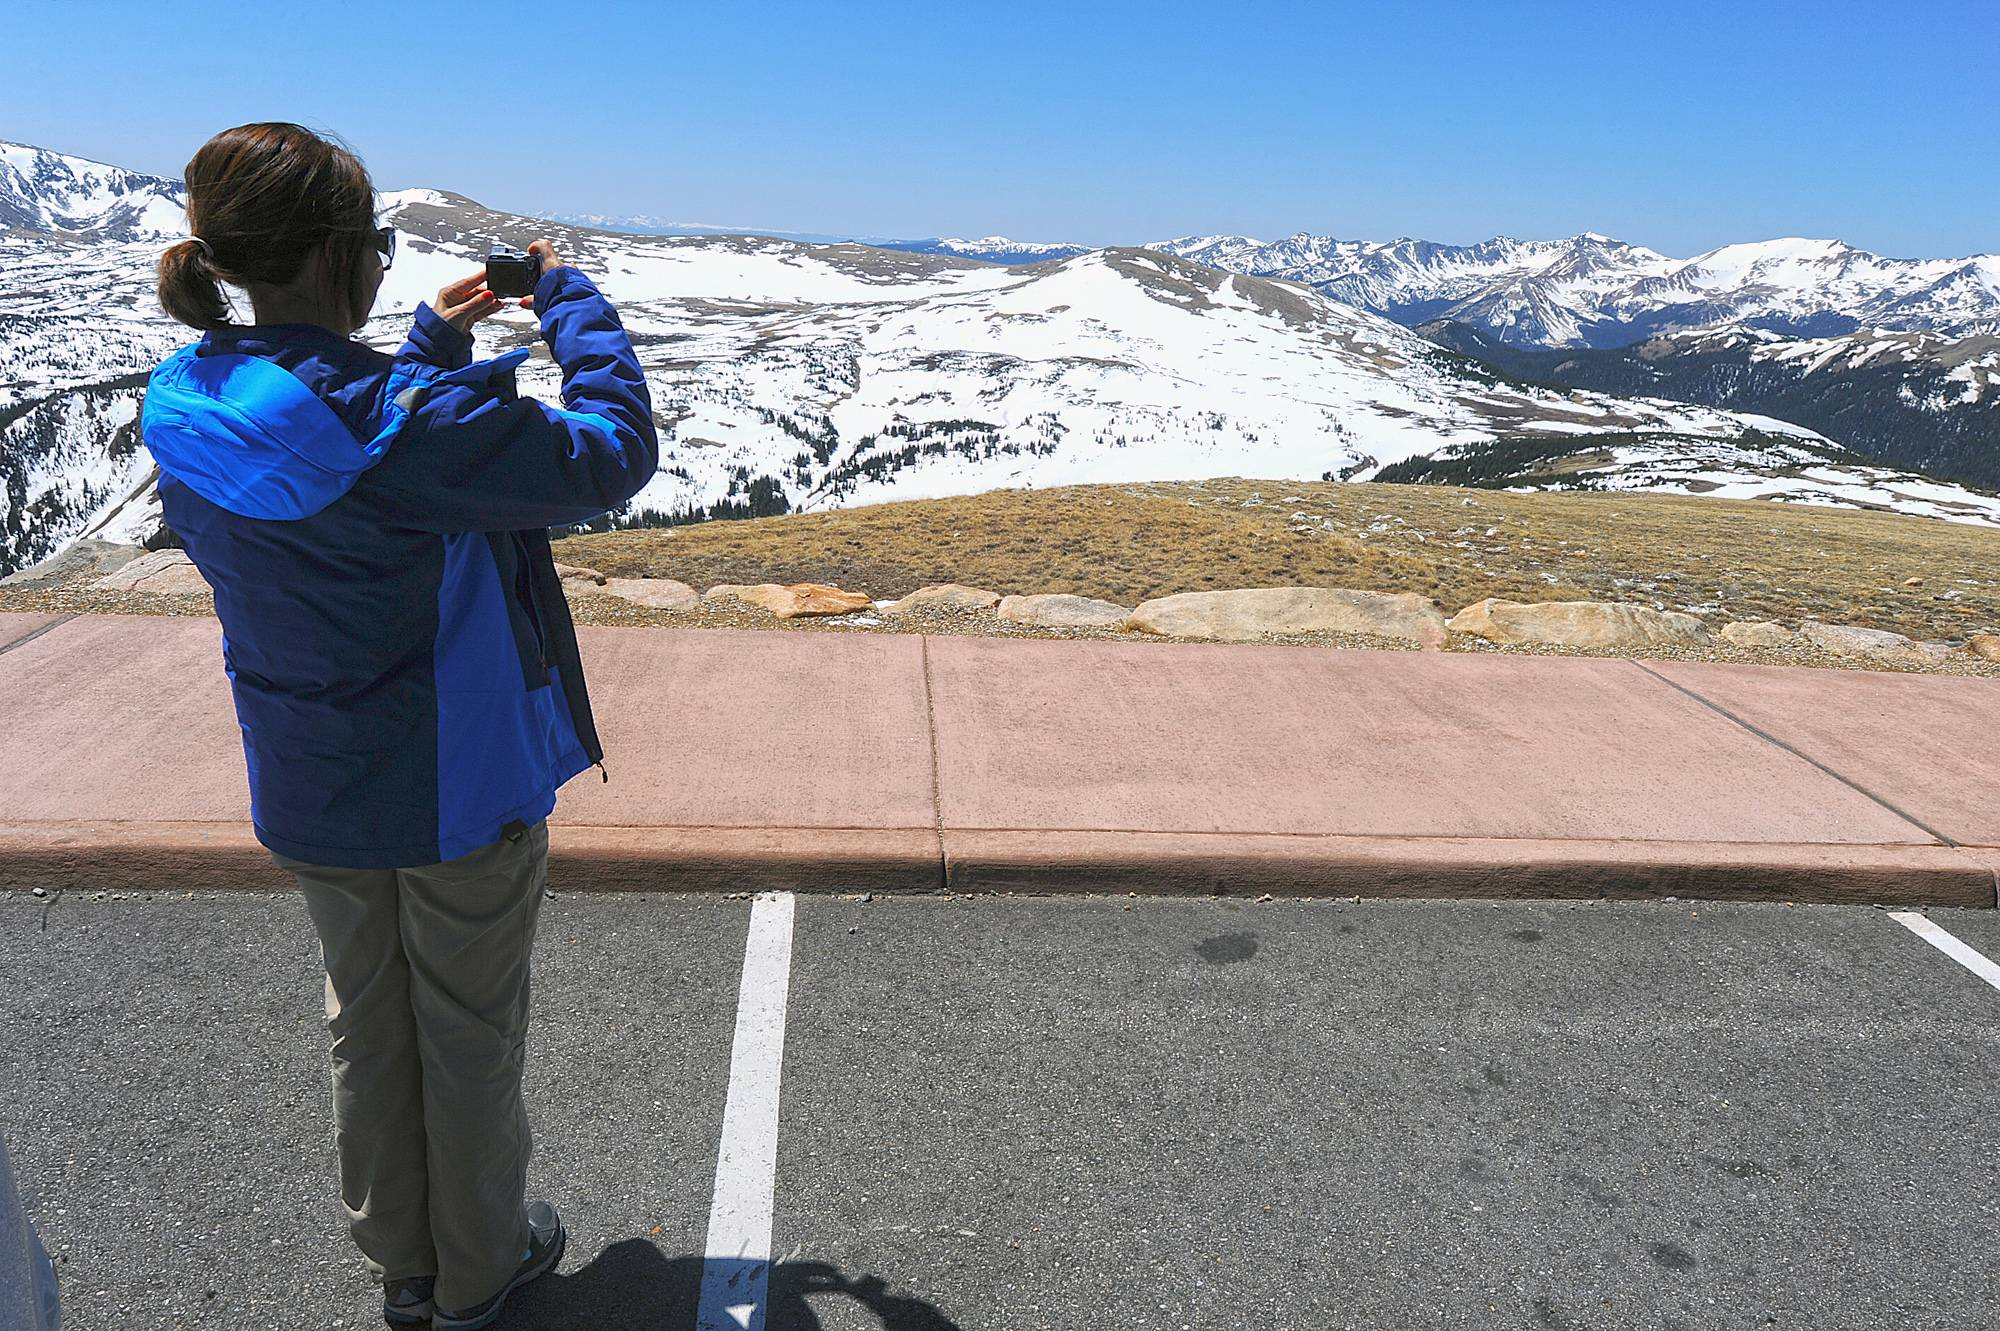 ASSOCIATED PRESS Brazilian national Maria Mackmillan snaps a photo from Gore Overlook on Trail Ridge Road in Rocky Mountain National Park outside Estes Park, Colo. Two fatal lightning strikes on consecutive days in July 2014 pinpoint dangers not always apparent to visitors to the 11,000-foot exposed high country of Rocky Mountain National Park. Afternoon storms visible miles away arrive overhead suddenly.